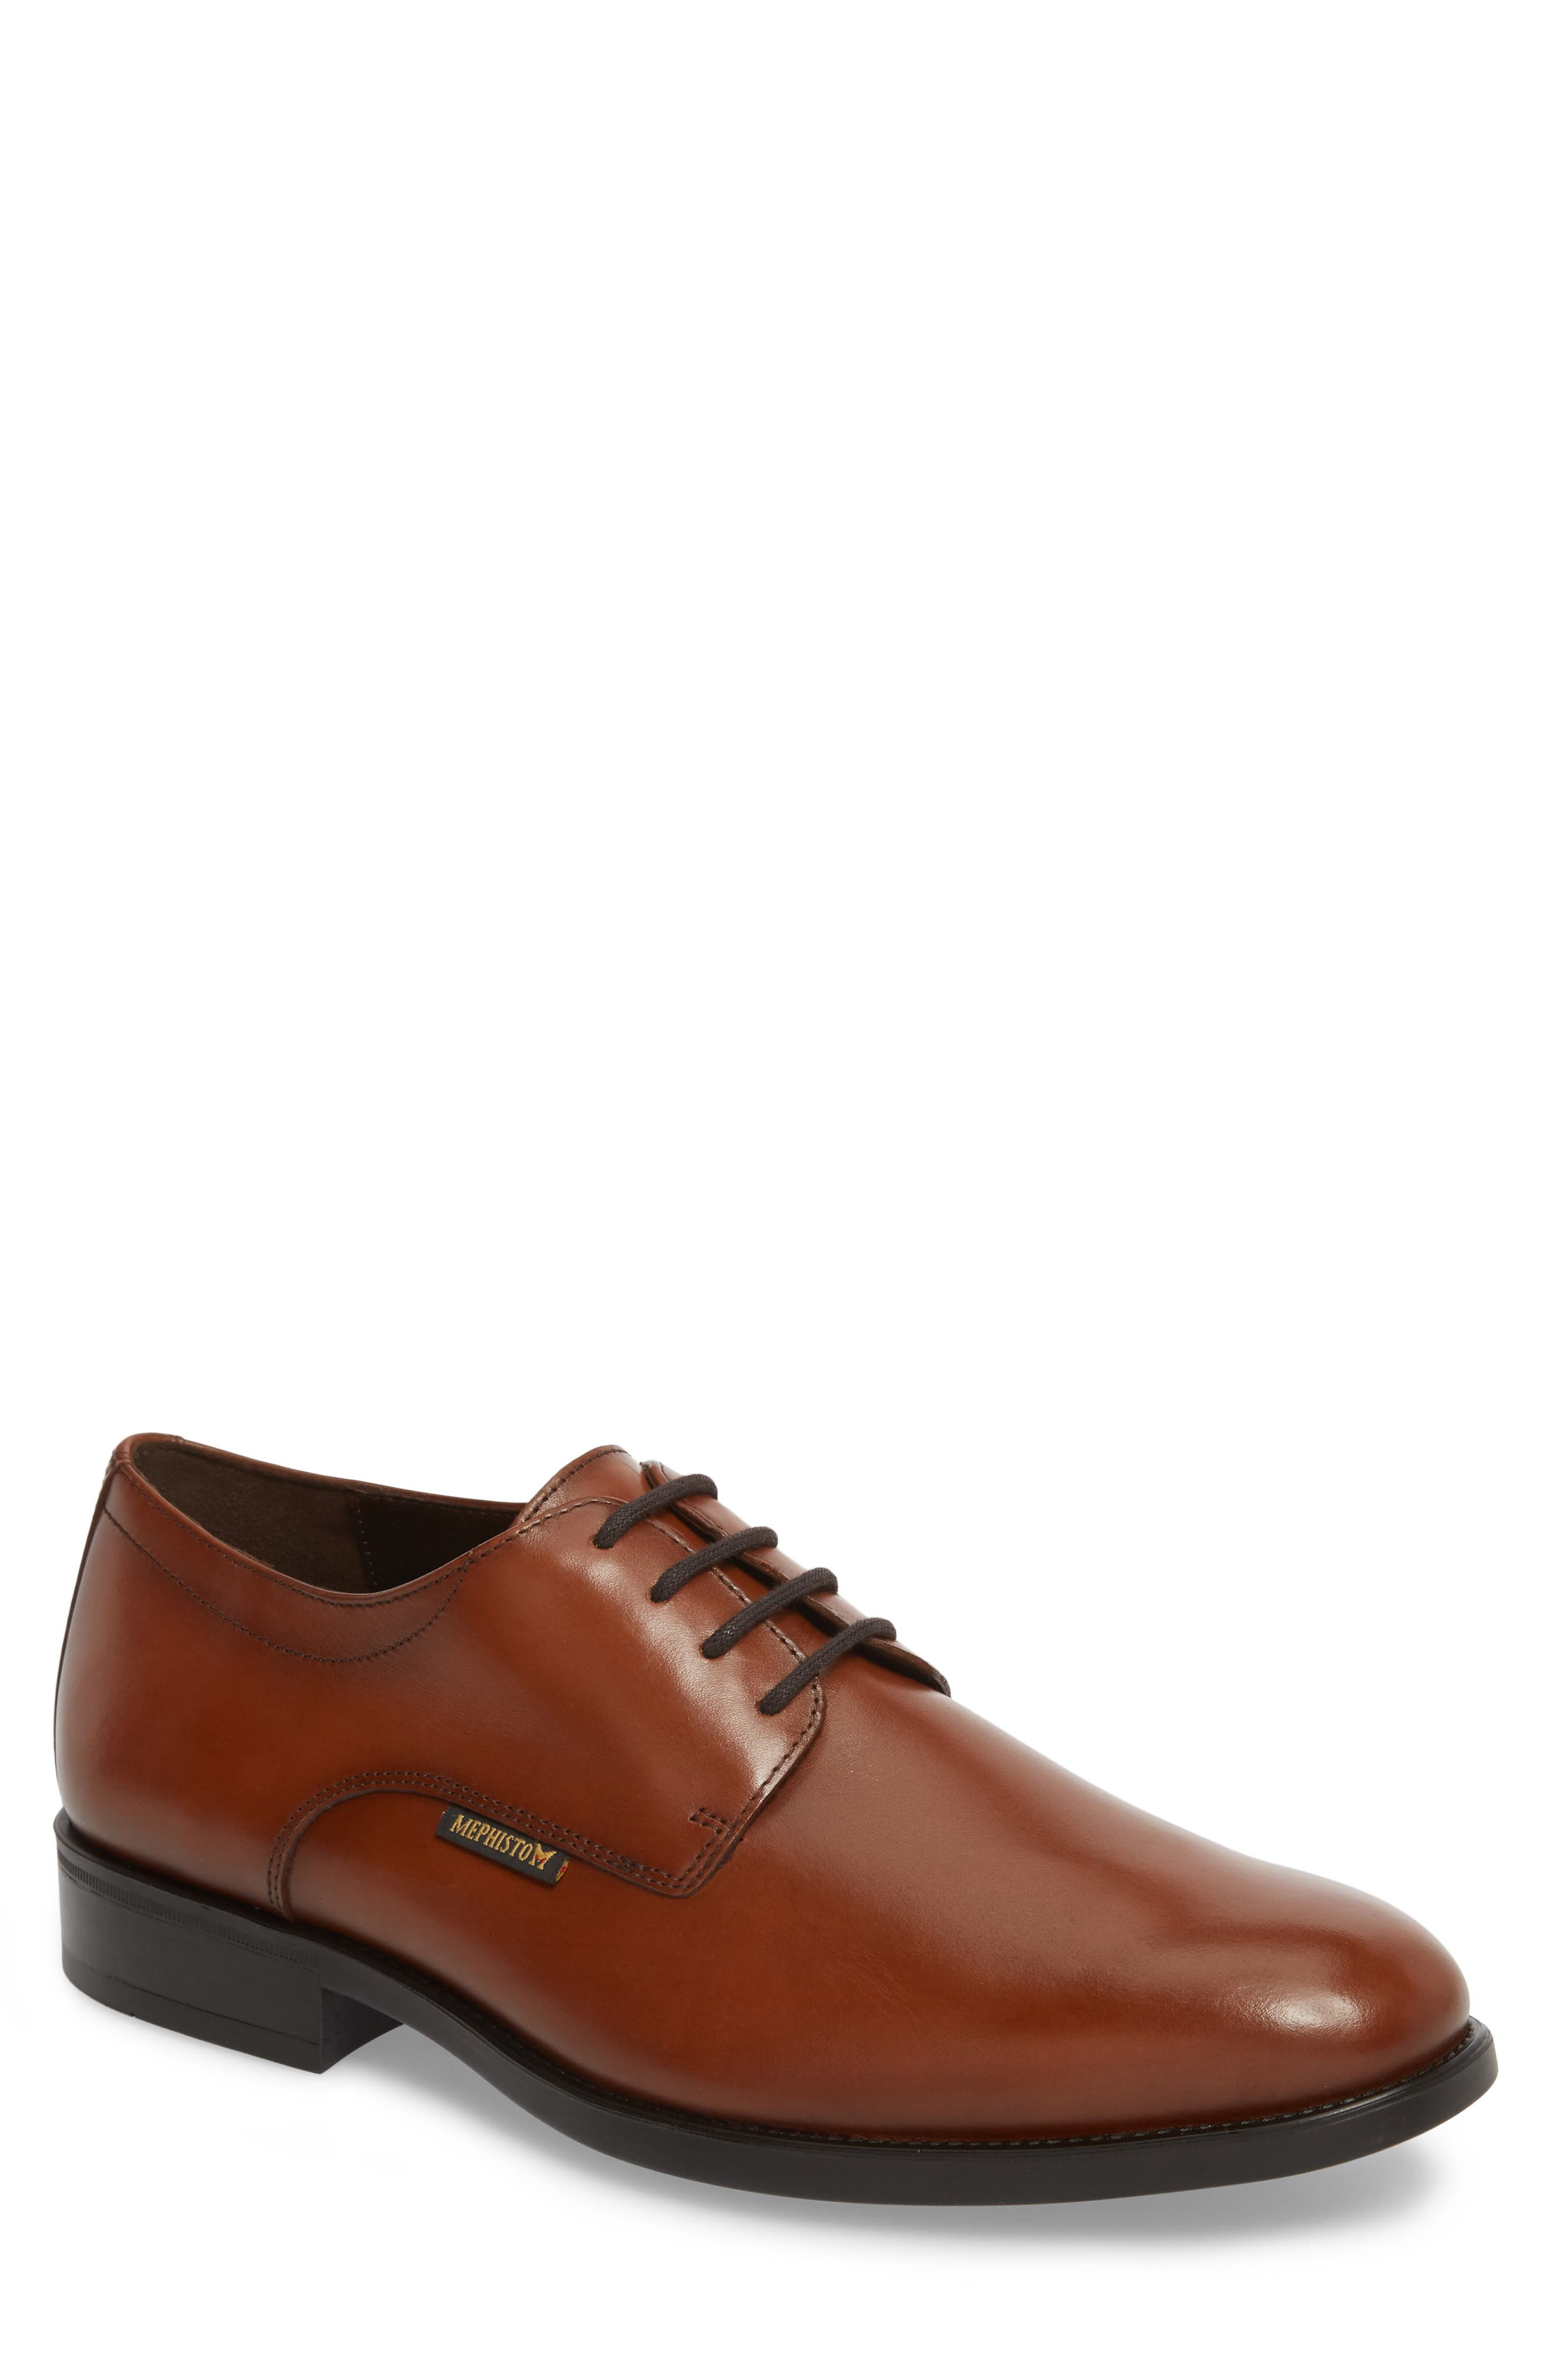 'Cooper' Plain Toe Derby,                         Main,                         color, CHESTNUT LEATHER